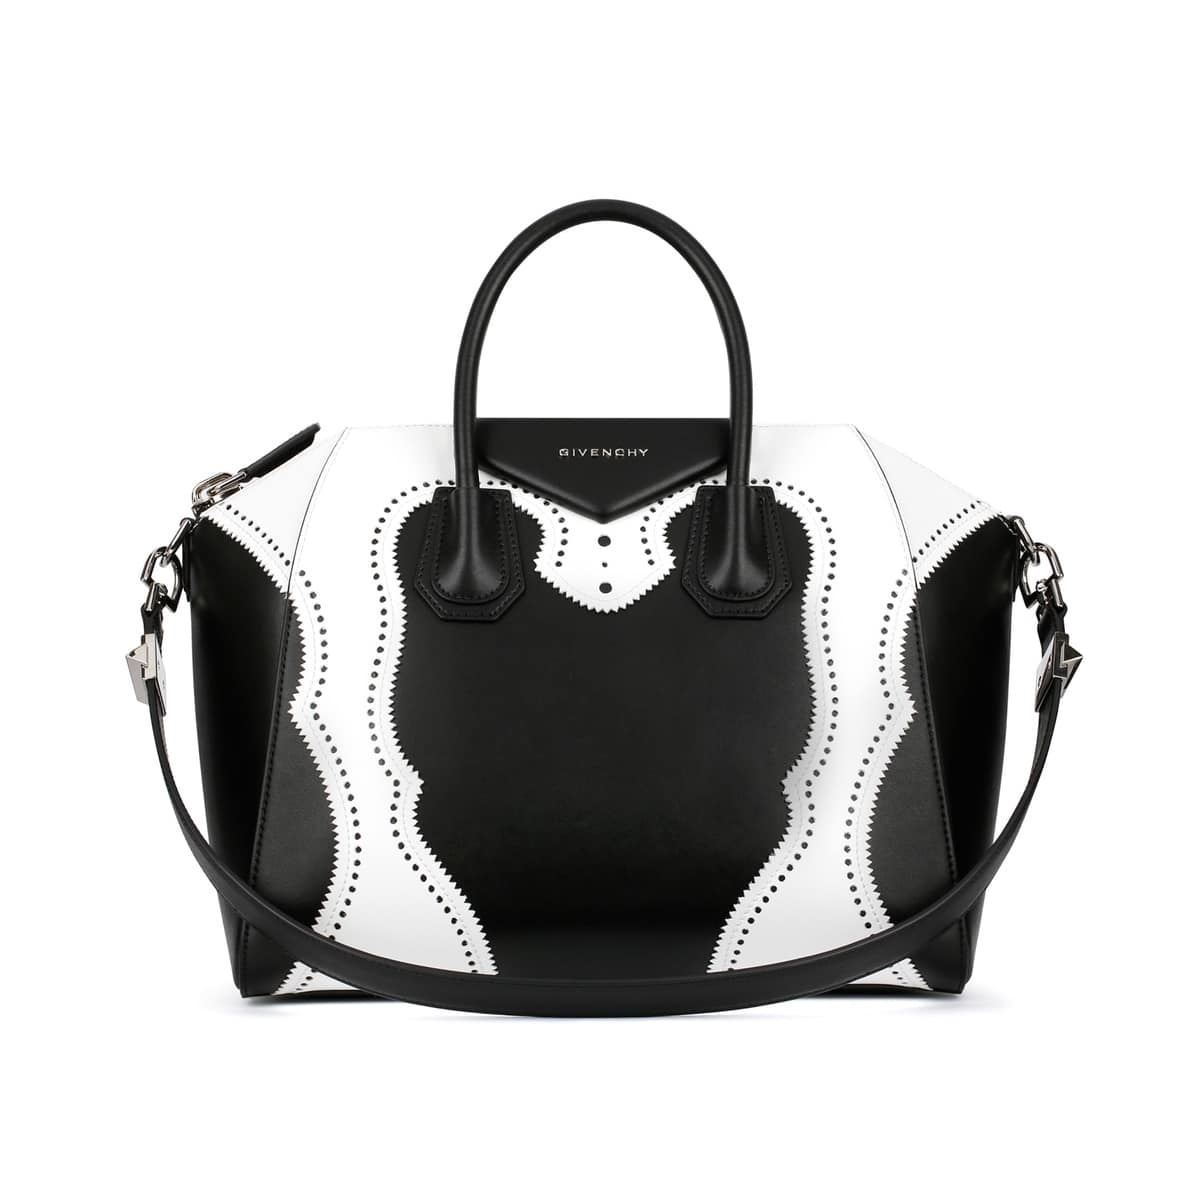 Givenchy Spring Summer 2016 Bag Collection   Spotted Fashion 2ecf979d80